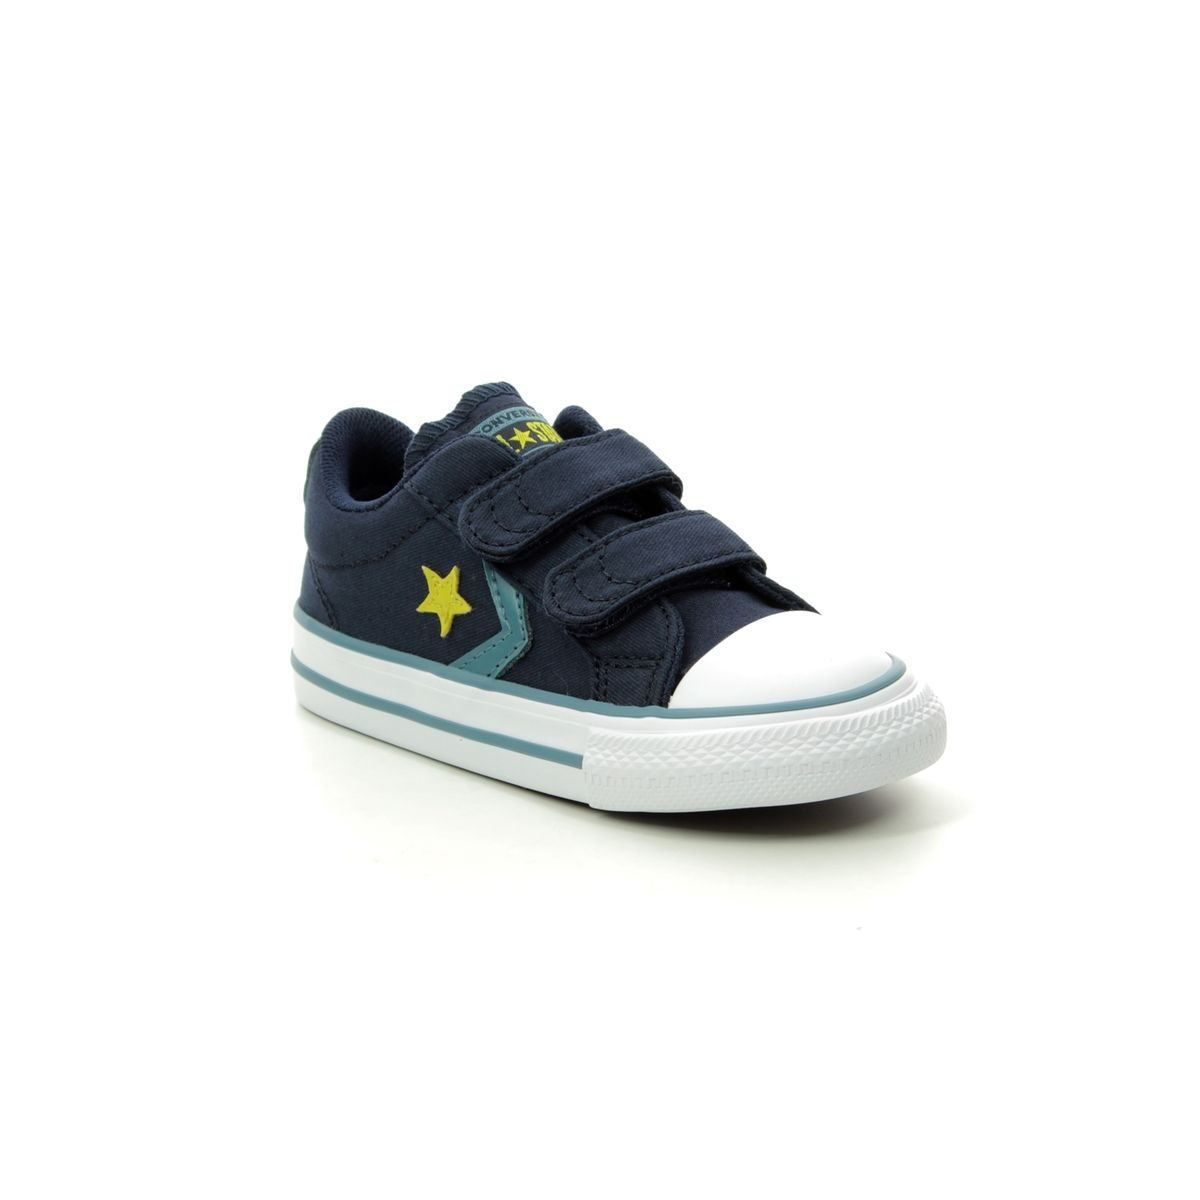 a115ccb02fc1 Converse Trainers - Navy - 763528C STAR PLAYER 2V VELCRO